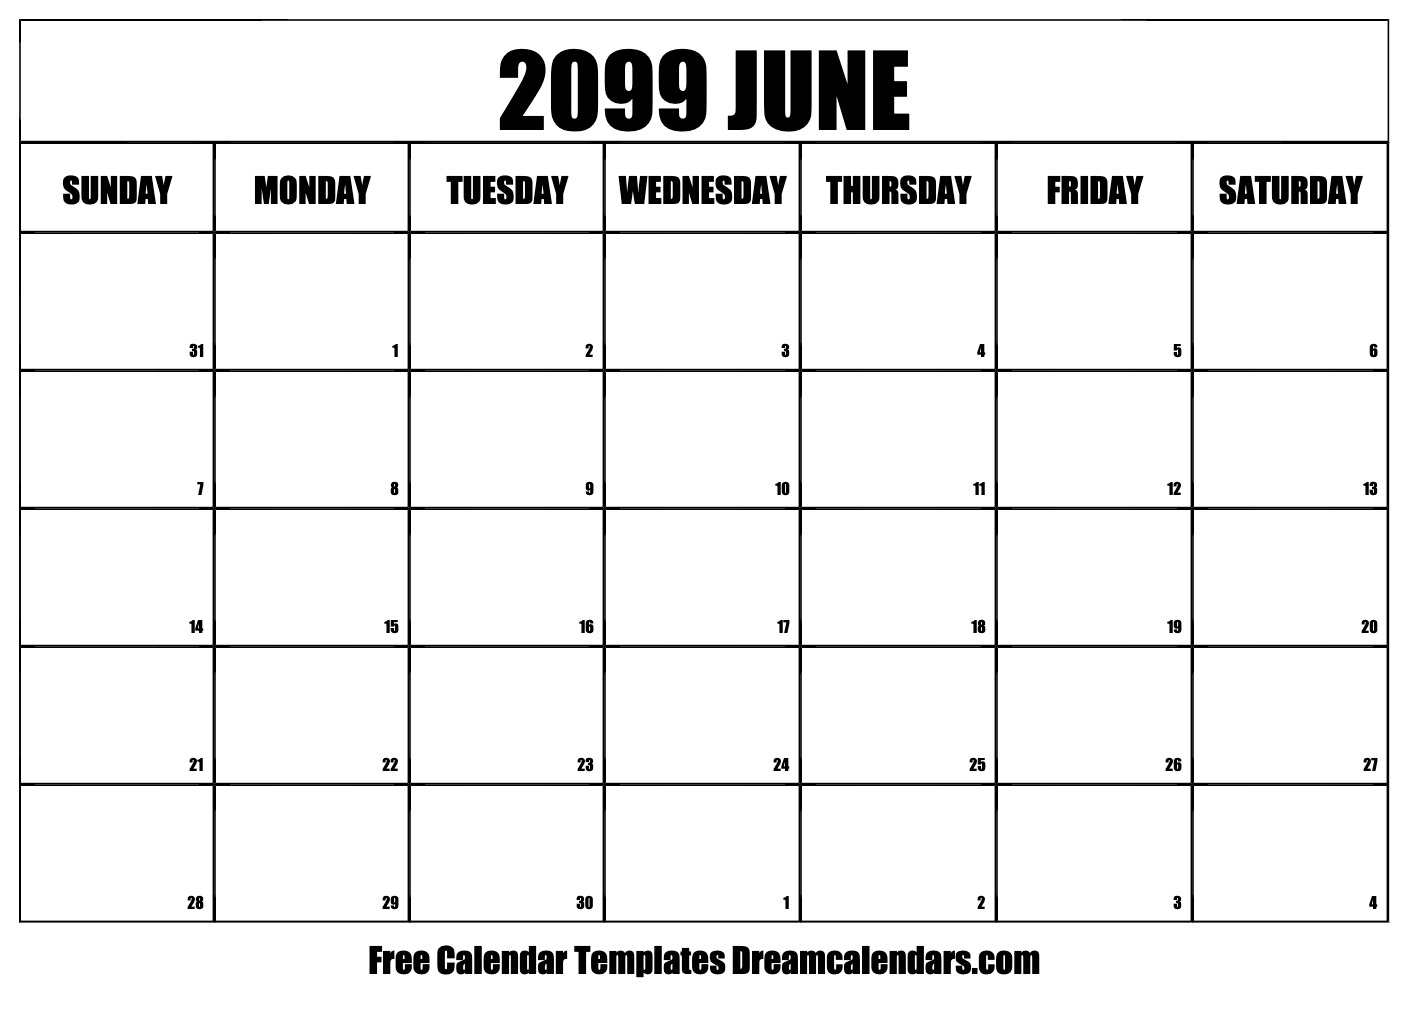 graphic relating to Printable June Calendar named Printable June 2099 Calendar